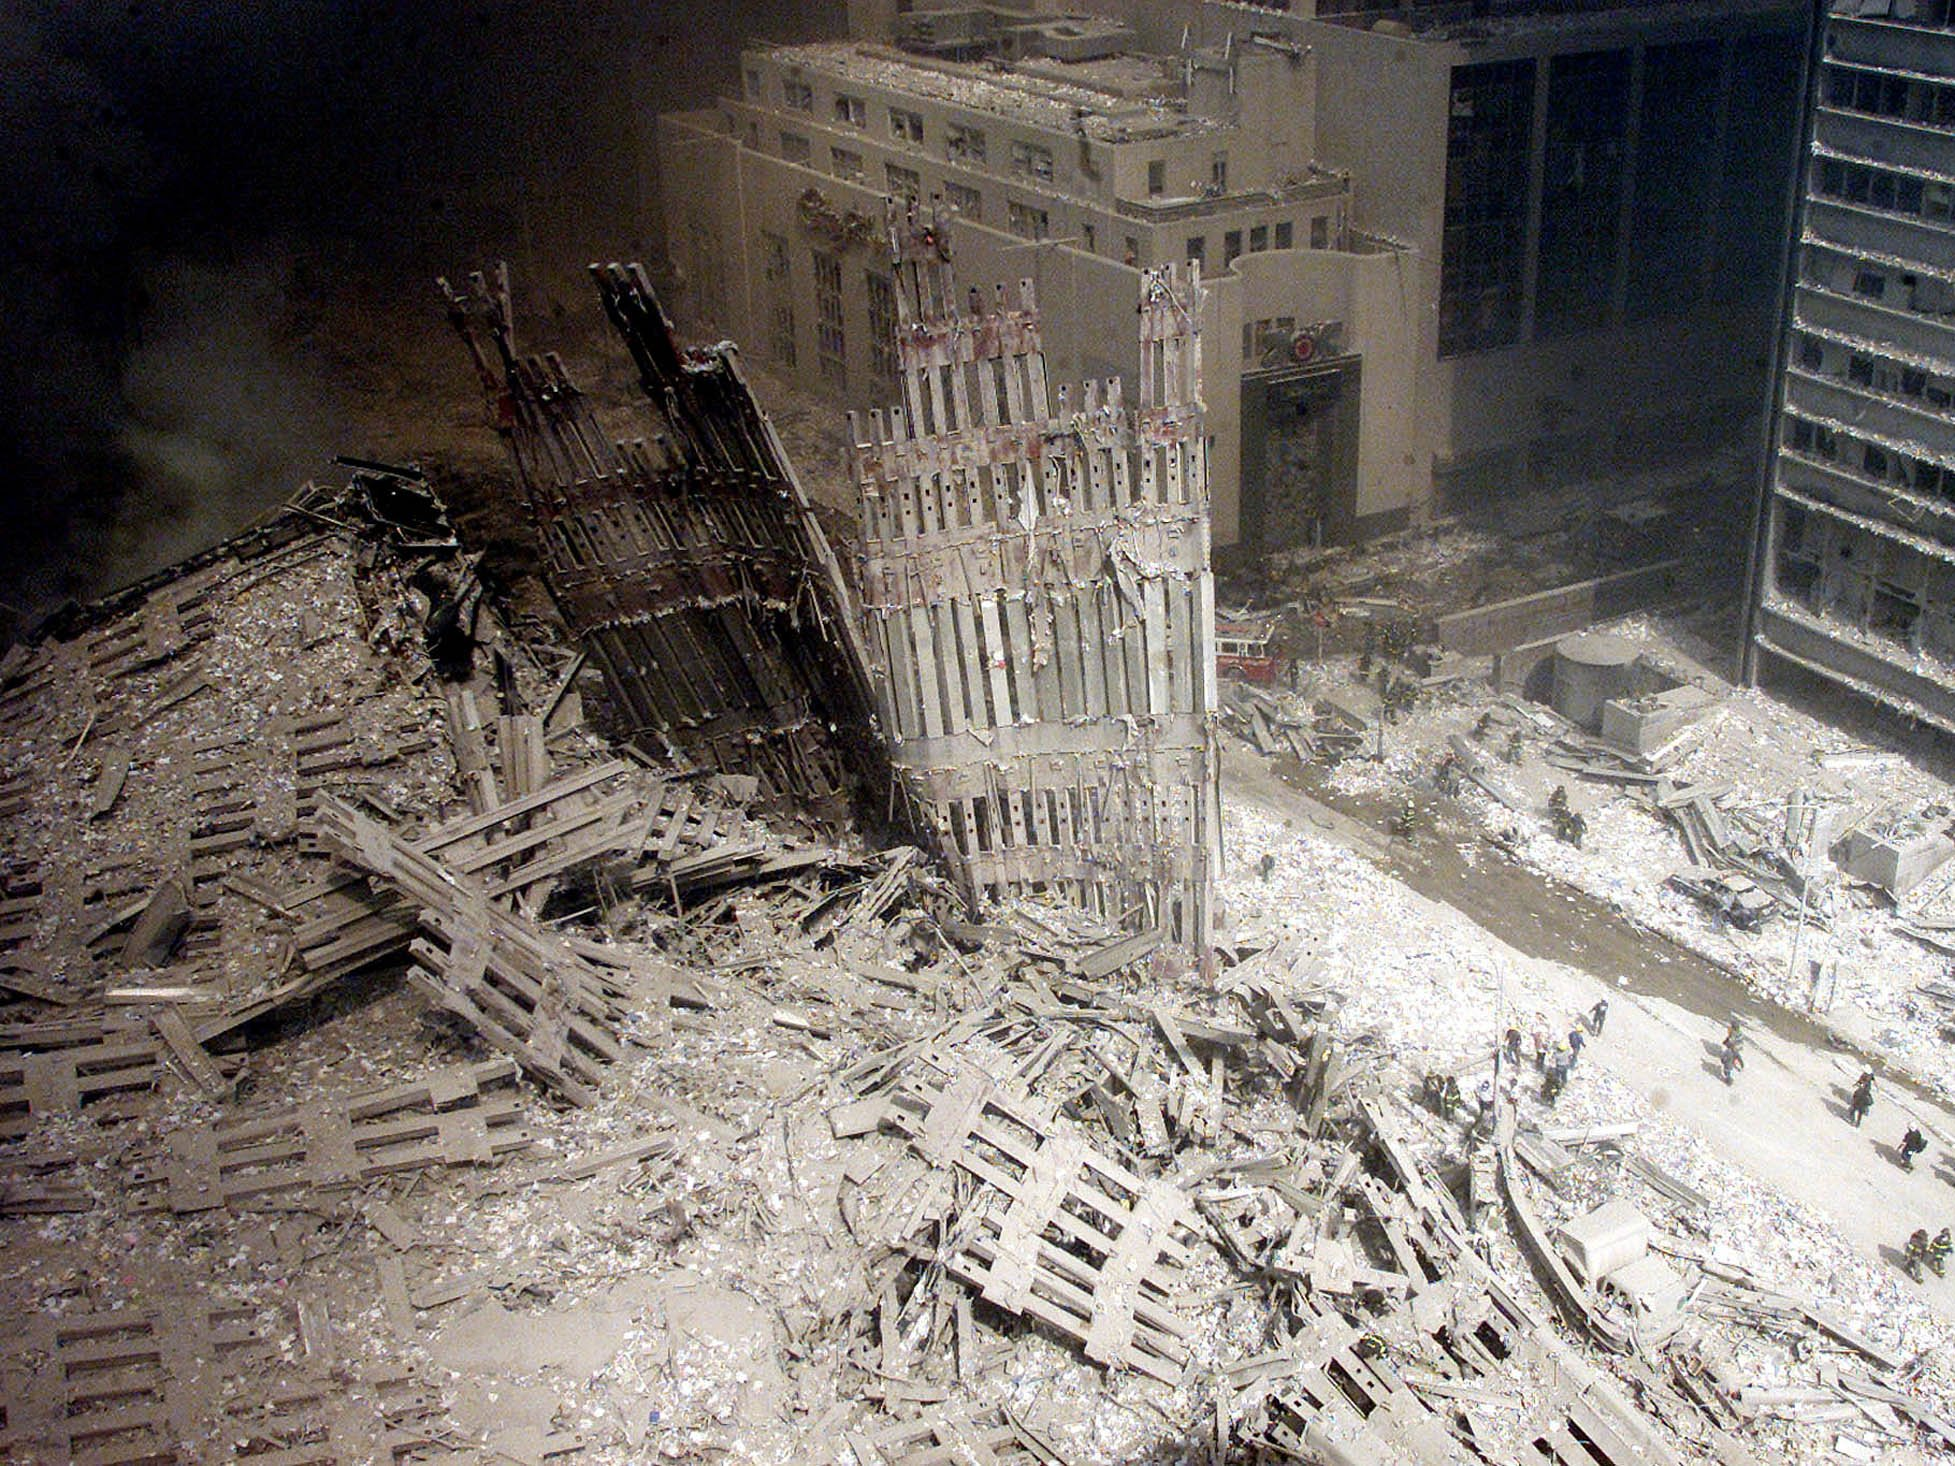 9/11 rubble dust